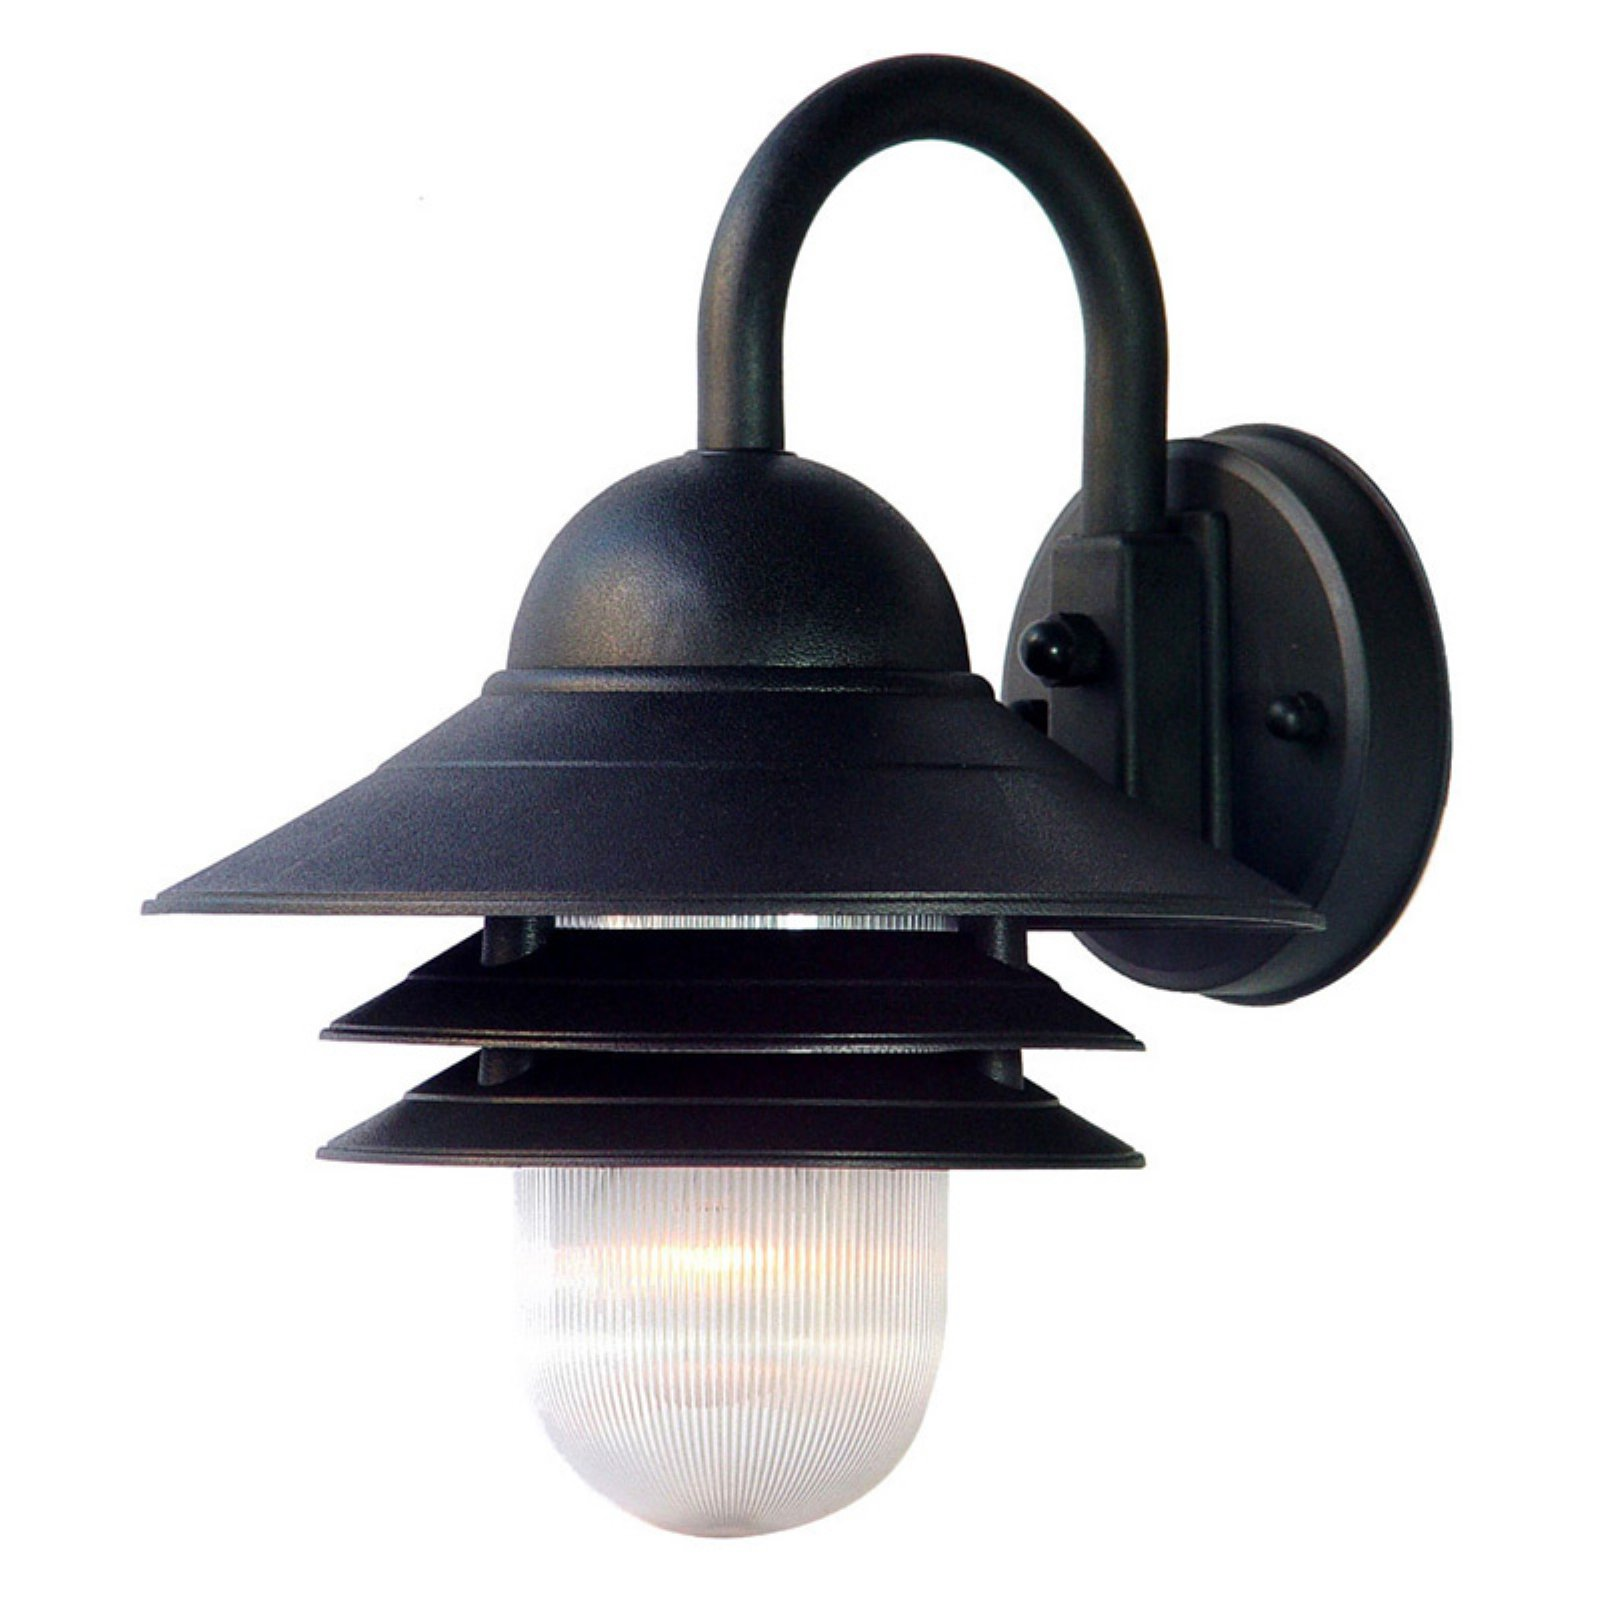 Acclaim Lighting Mariner 1 Light Outdoor Wall Mount Light Fixture